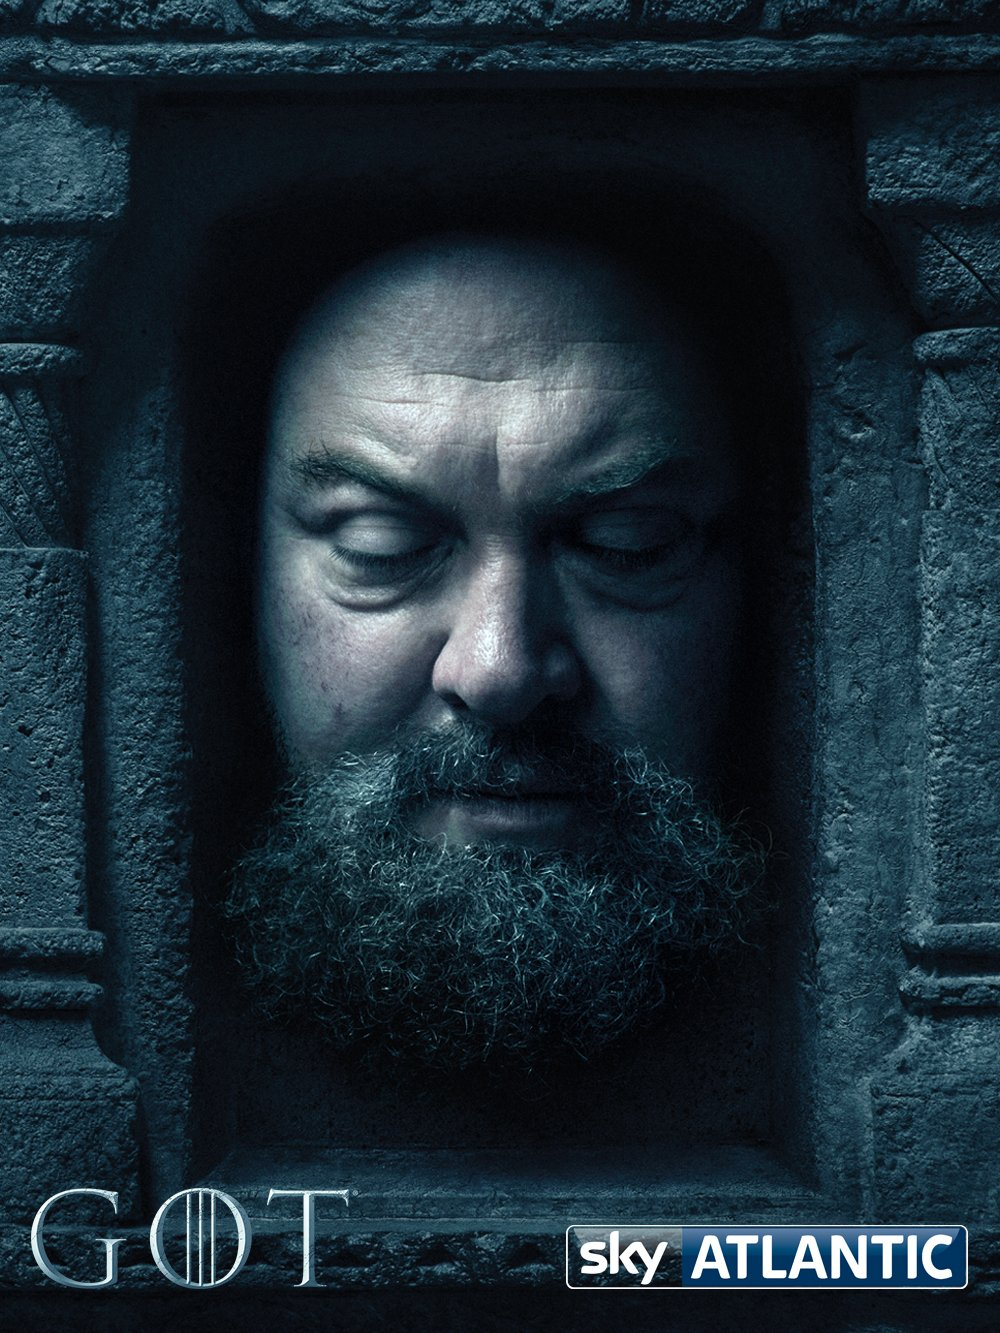 GAME OF THRONES Season 6 Character Posters | The ...